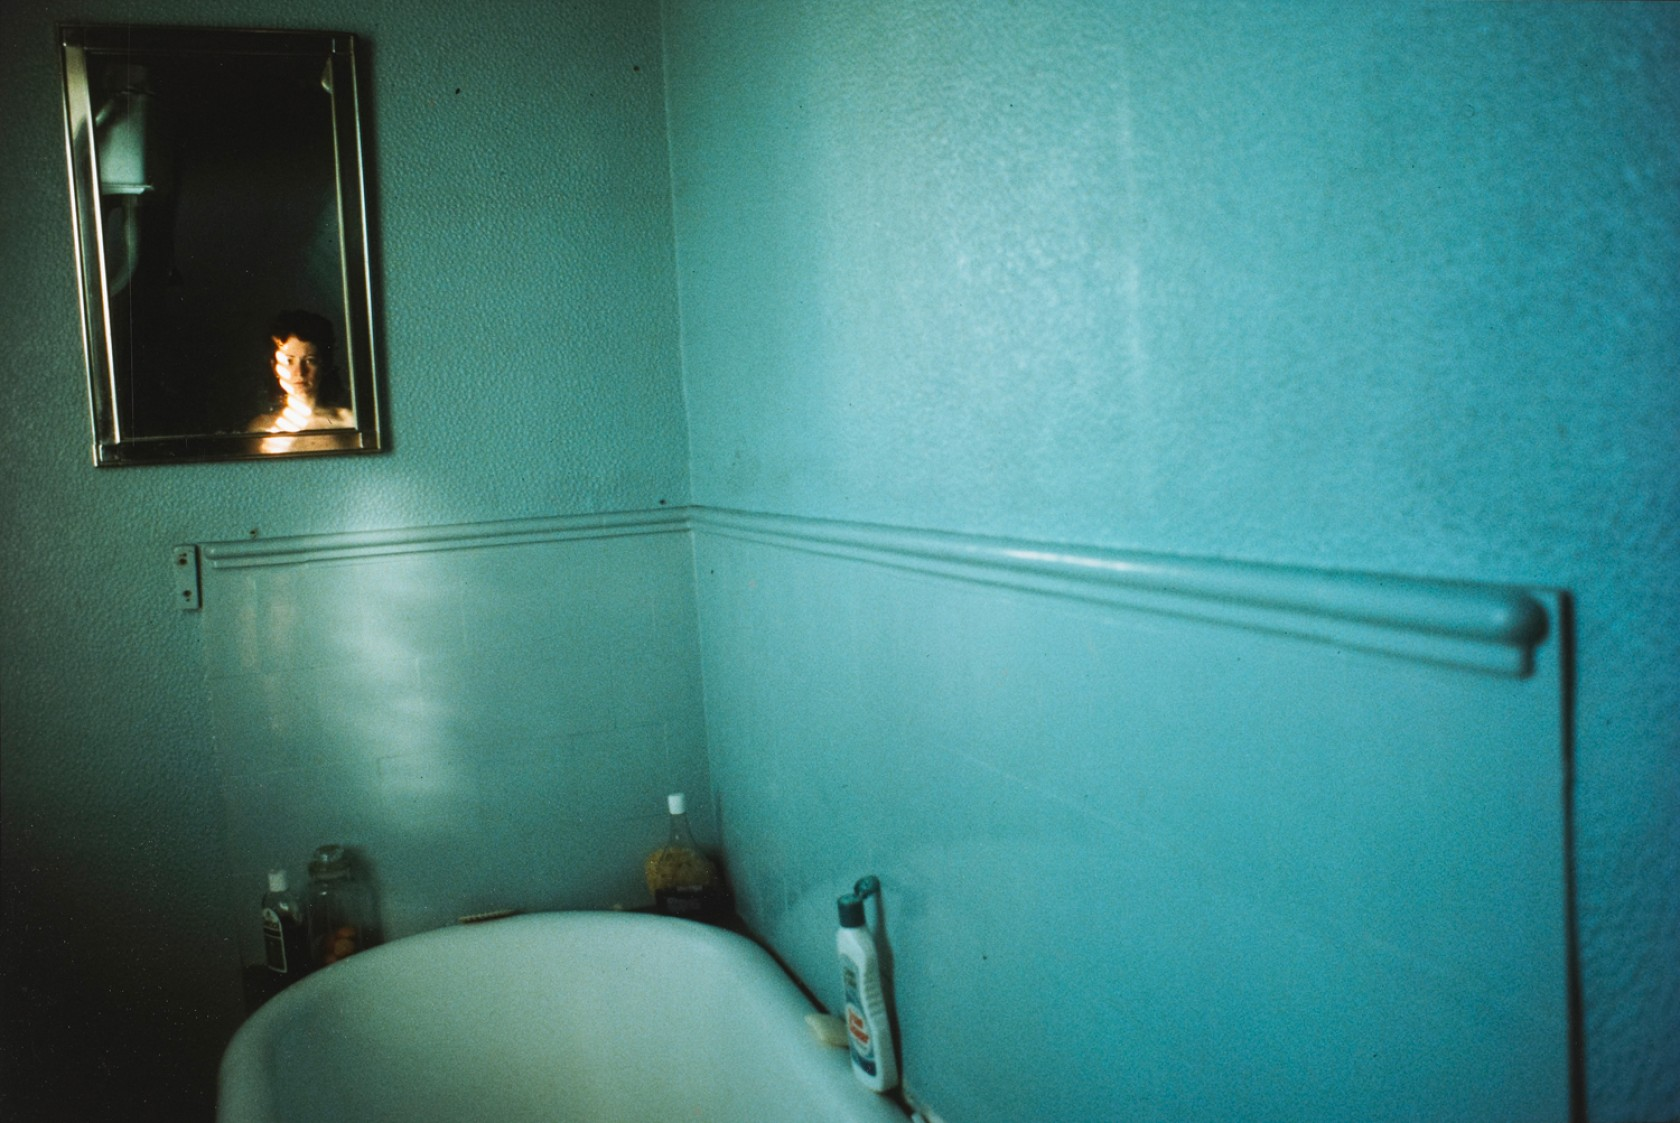 Nan Goldin, Self-portrait in blue bathroom, London